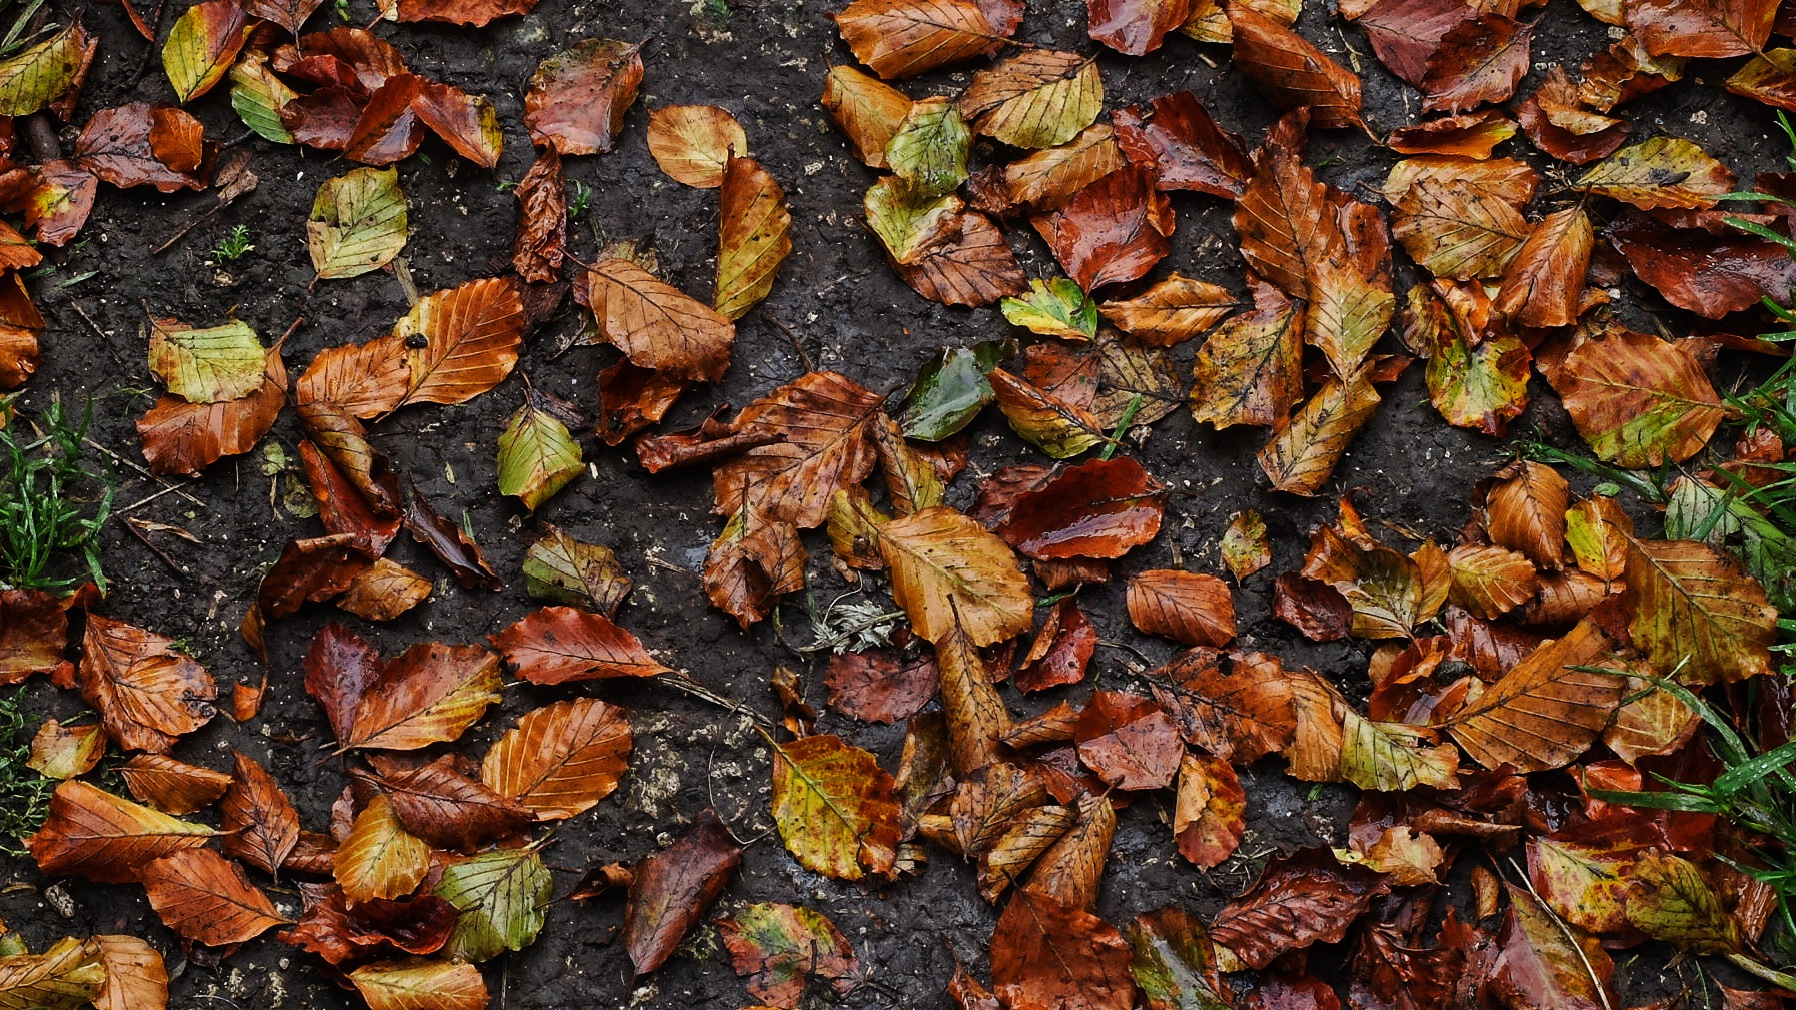 Autumn Leaves by Keith Patrak